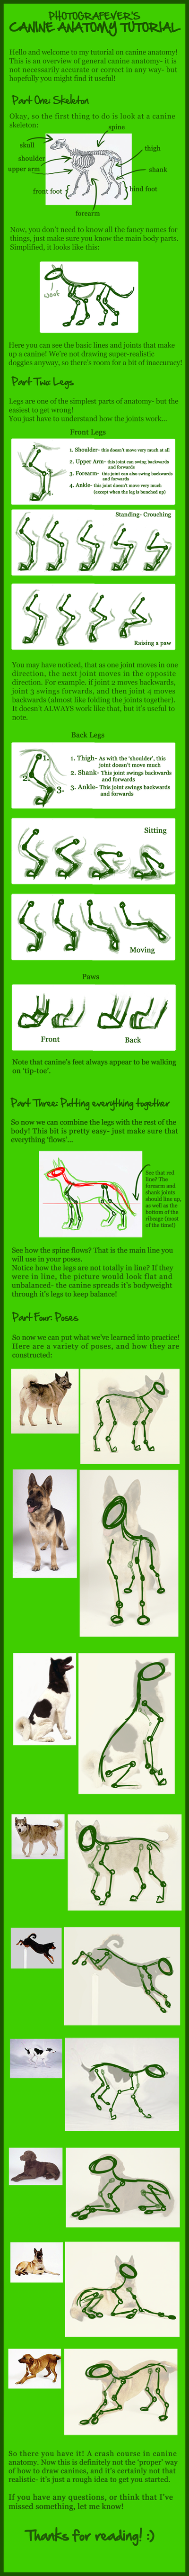 GIANT CANINE ANATOMY TUTORIAL by photografever